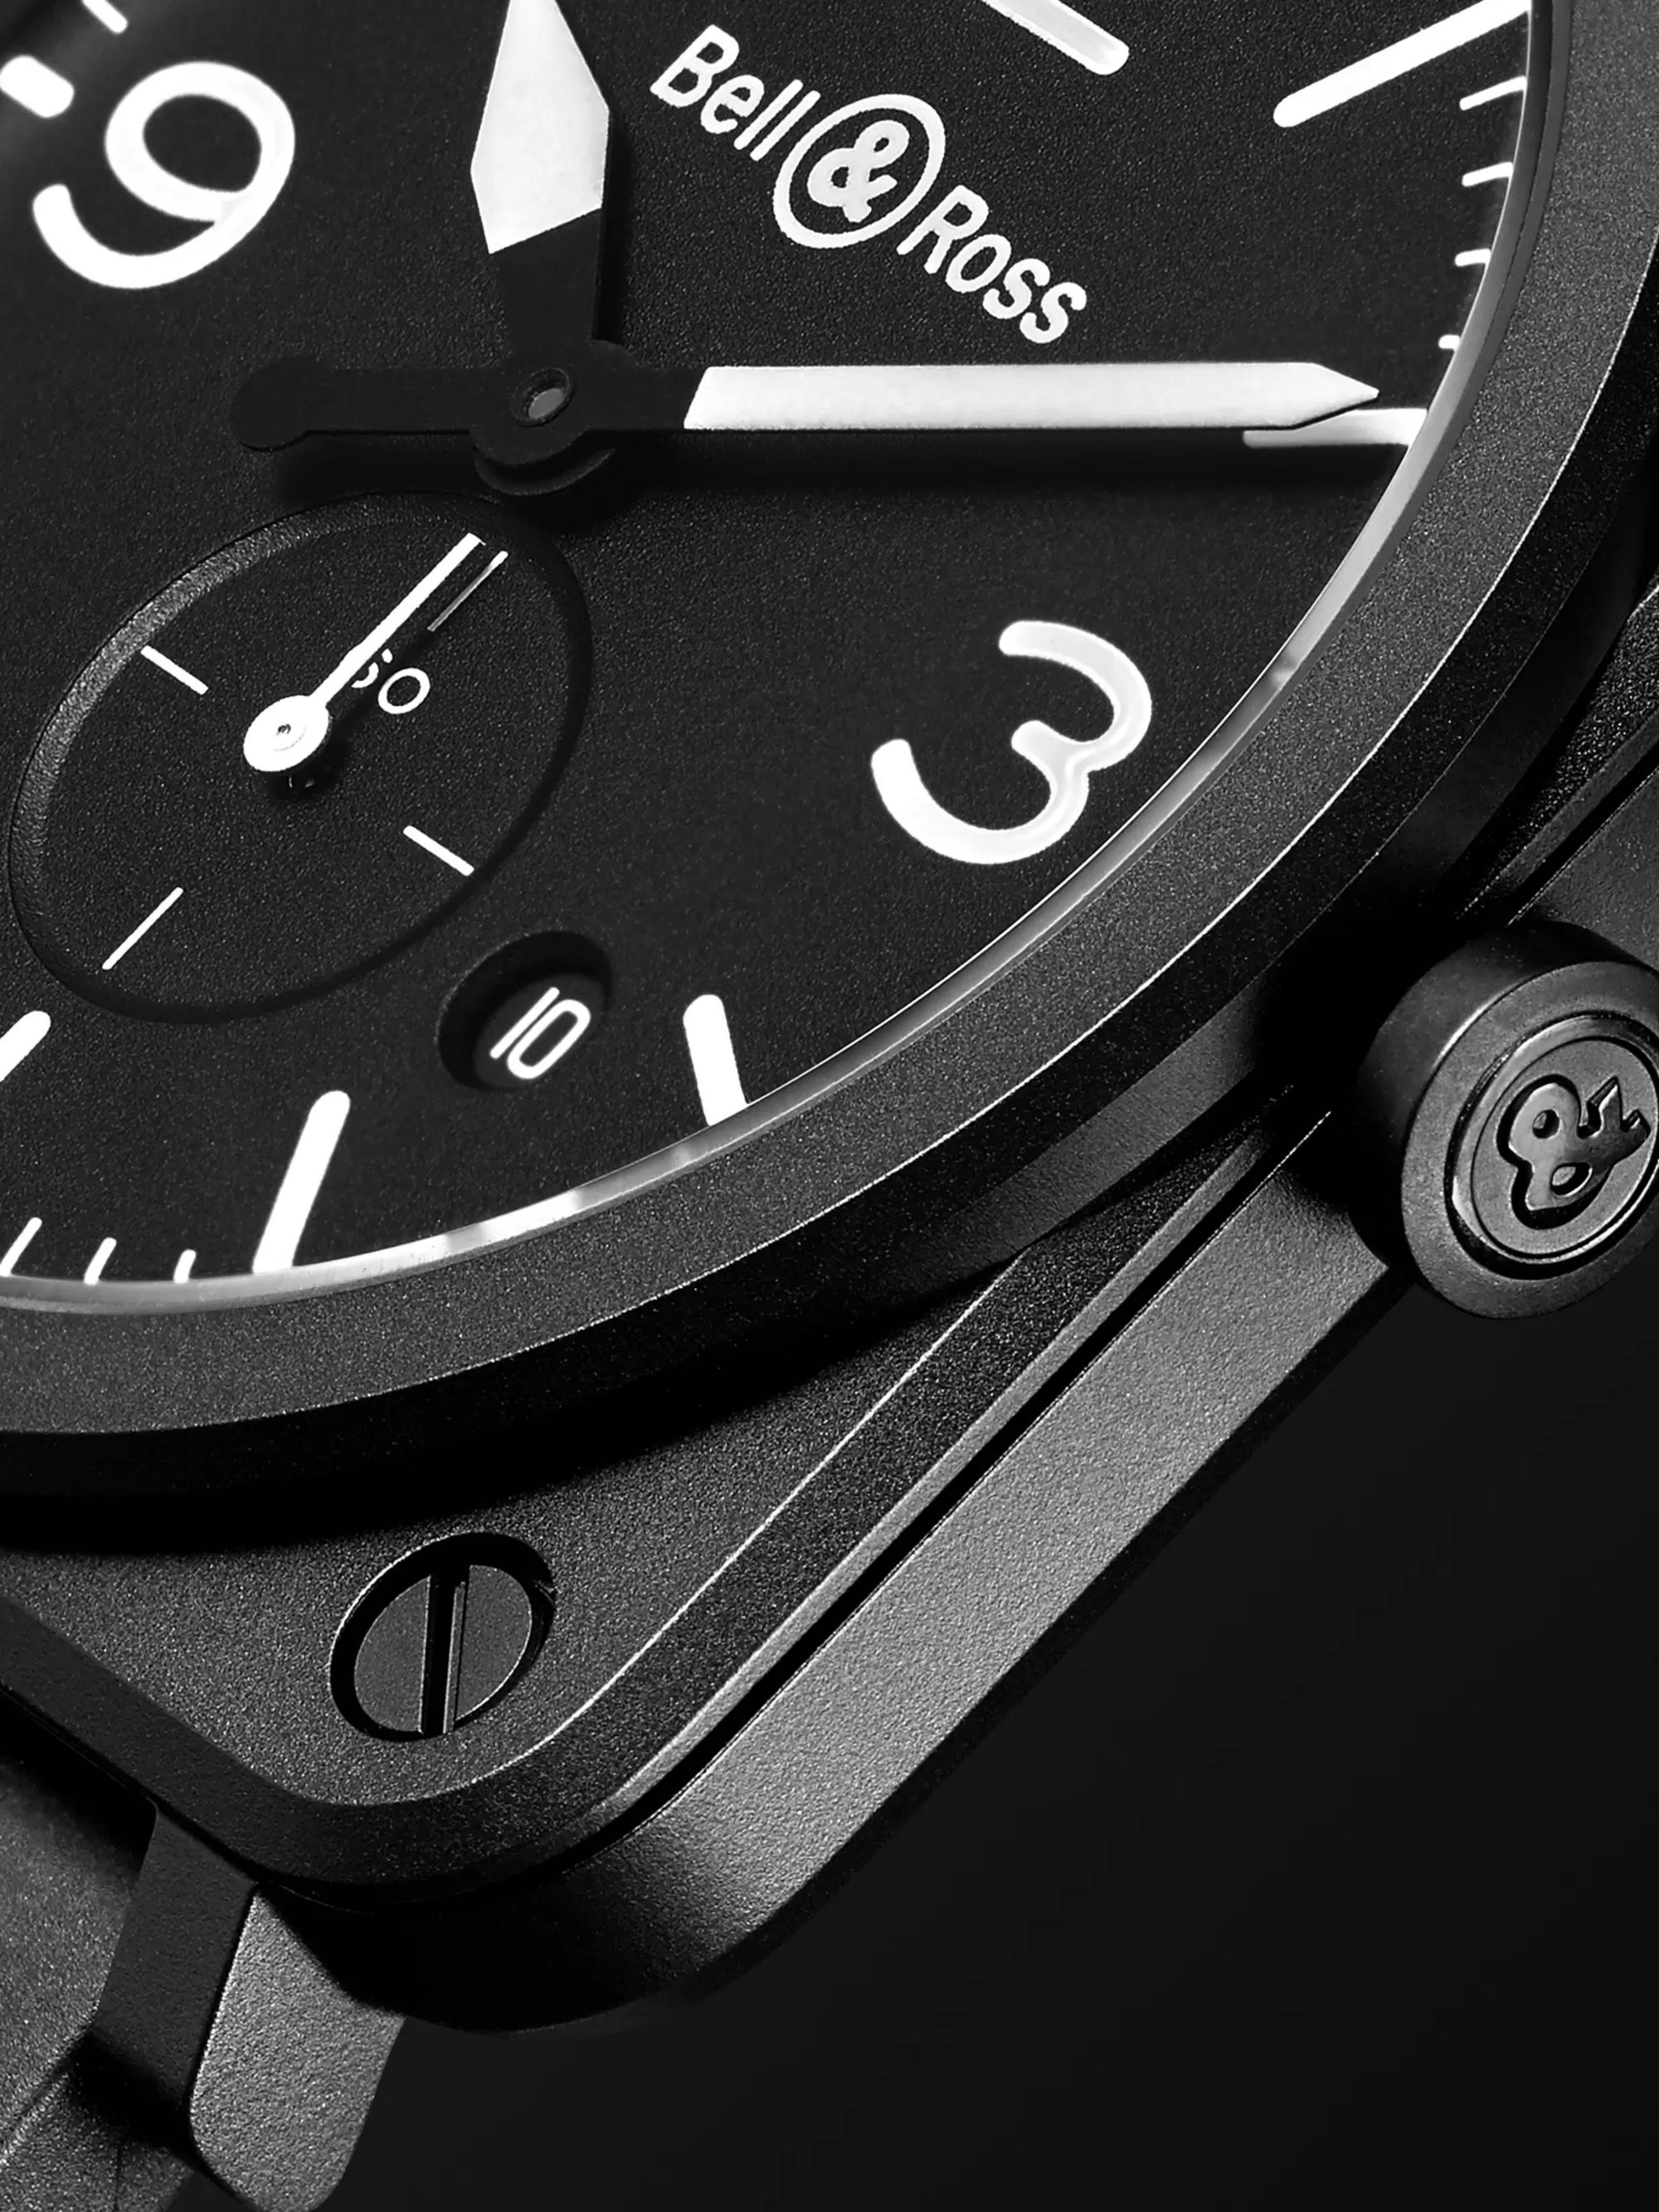 Bell & Ross BR S 39mm Ceramic and Rubber Watch, Ref. No. BRS-BL-CEM